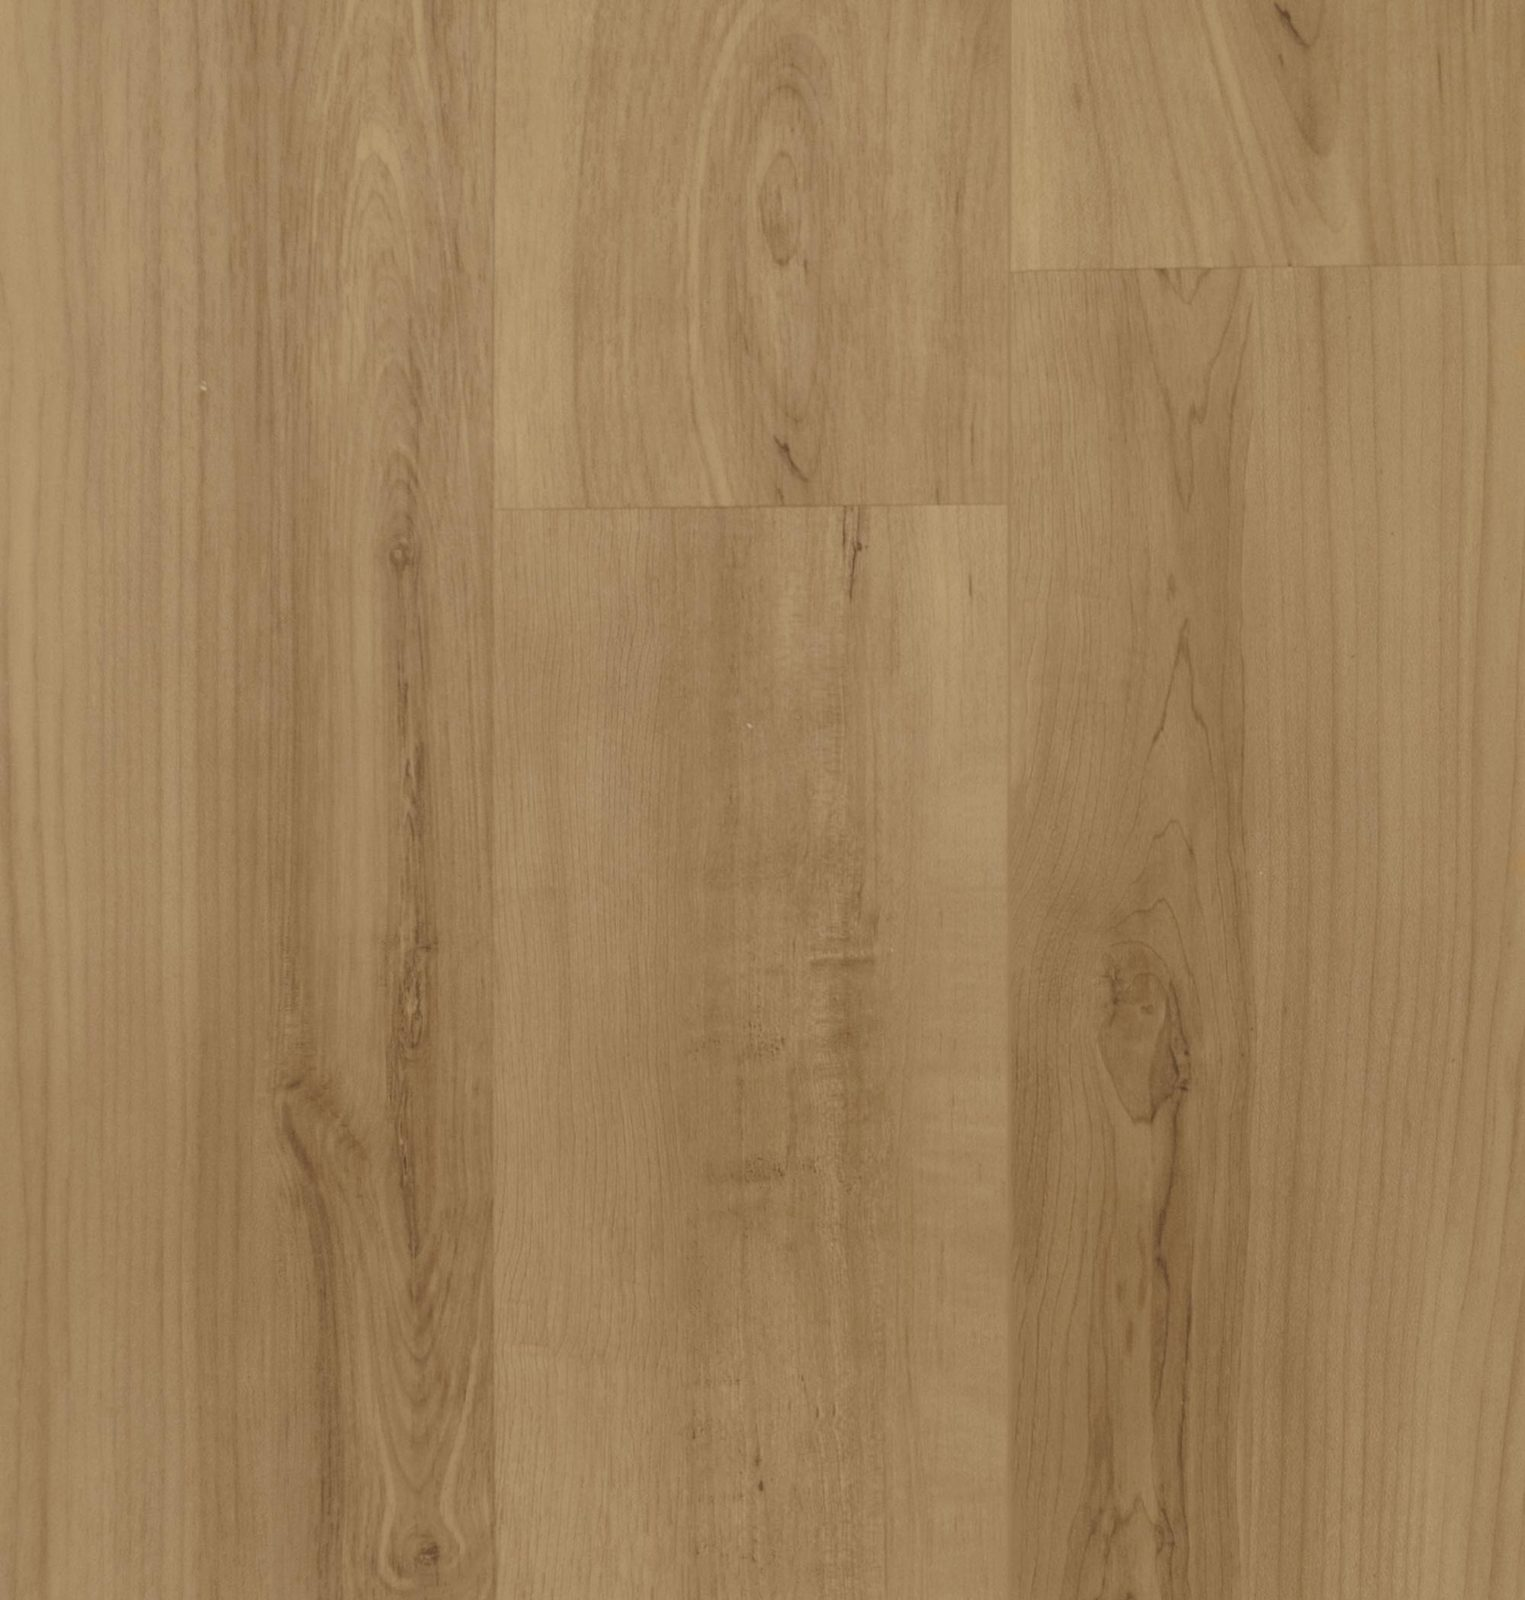 Mohawk Vinyl Flooring Of 6 X 49 Mohawk Rainstorm Luxury Vinyl Schillings